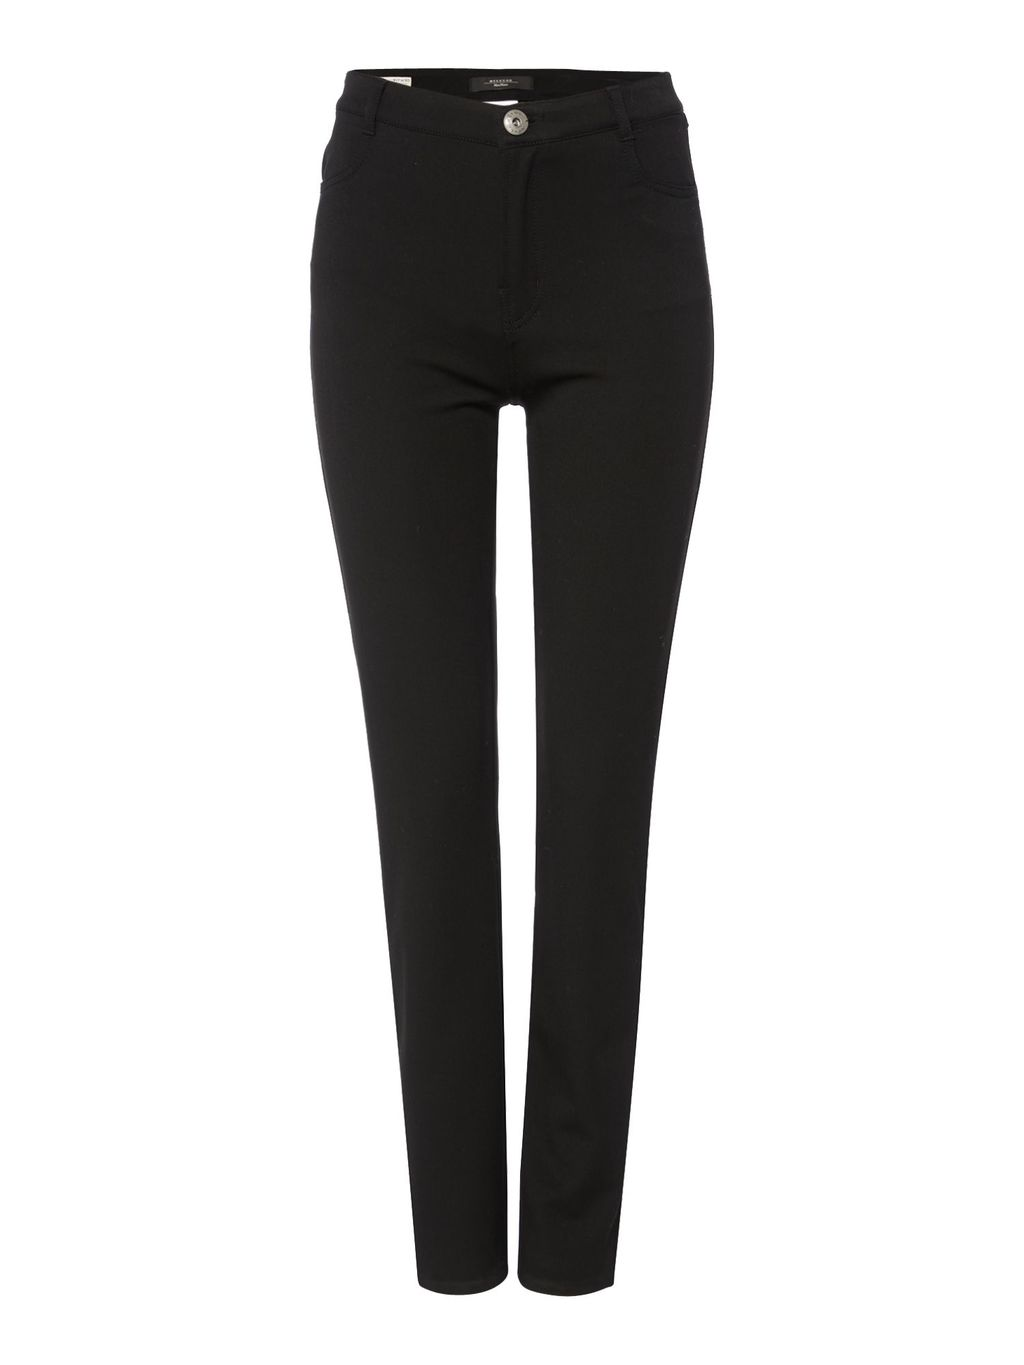 Palmira Stretch Slim Leg Trouser, Black - length: standard; pattern: plain; waist: high rise; predominant colour: black; occasions: casual, creative work; fibres: polyester/polyamide - mix; fit: slim leg; pattern type: fabric; texture group: other - light to midweight; style: standard; season: s/s 2016; wardrobe: basic